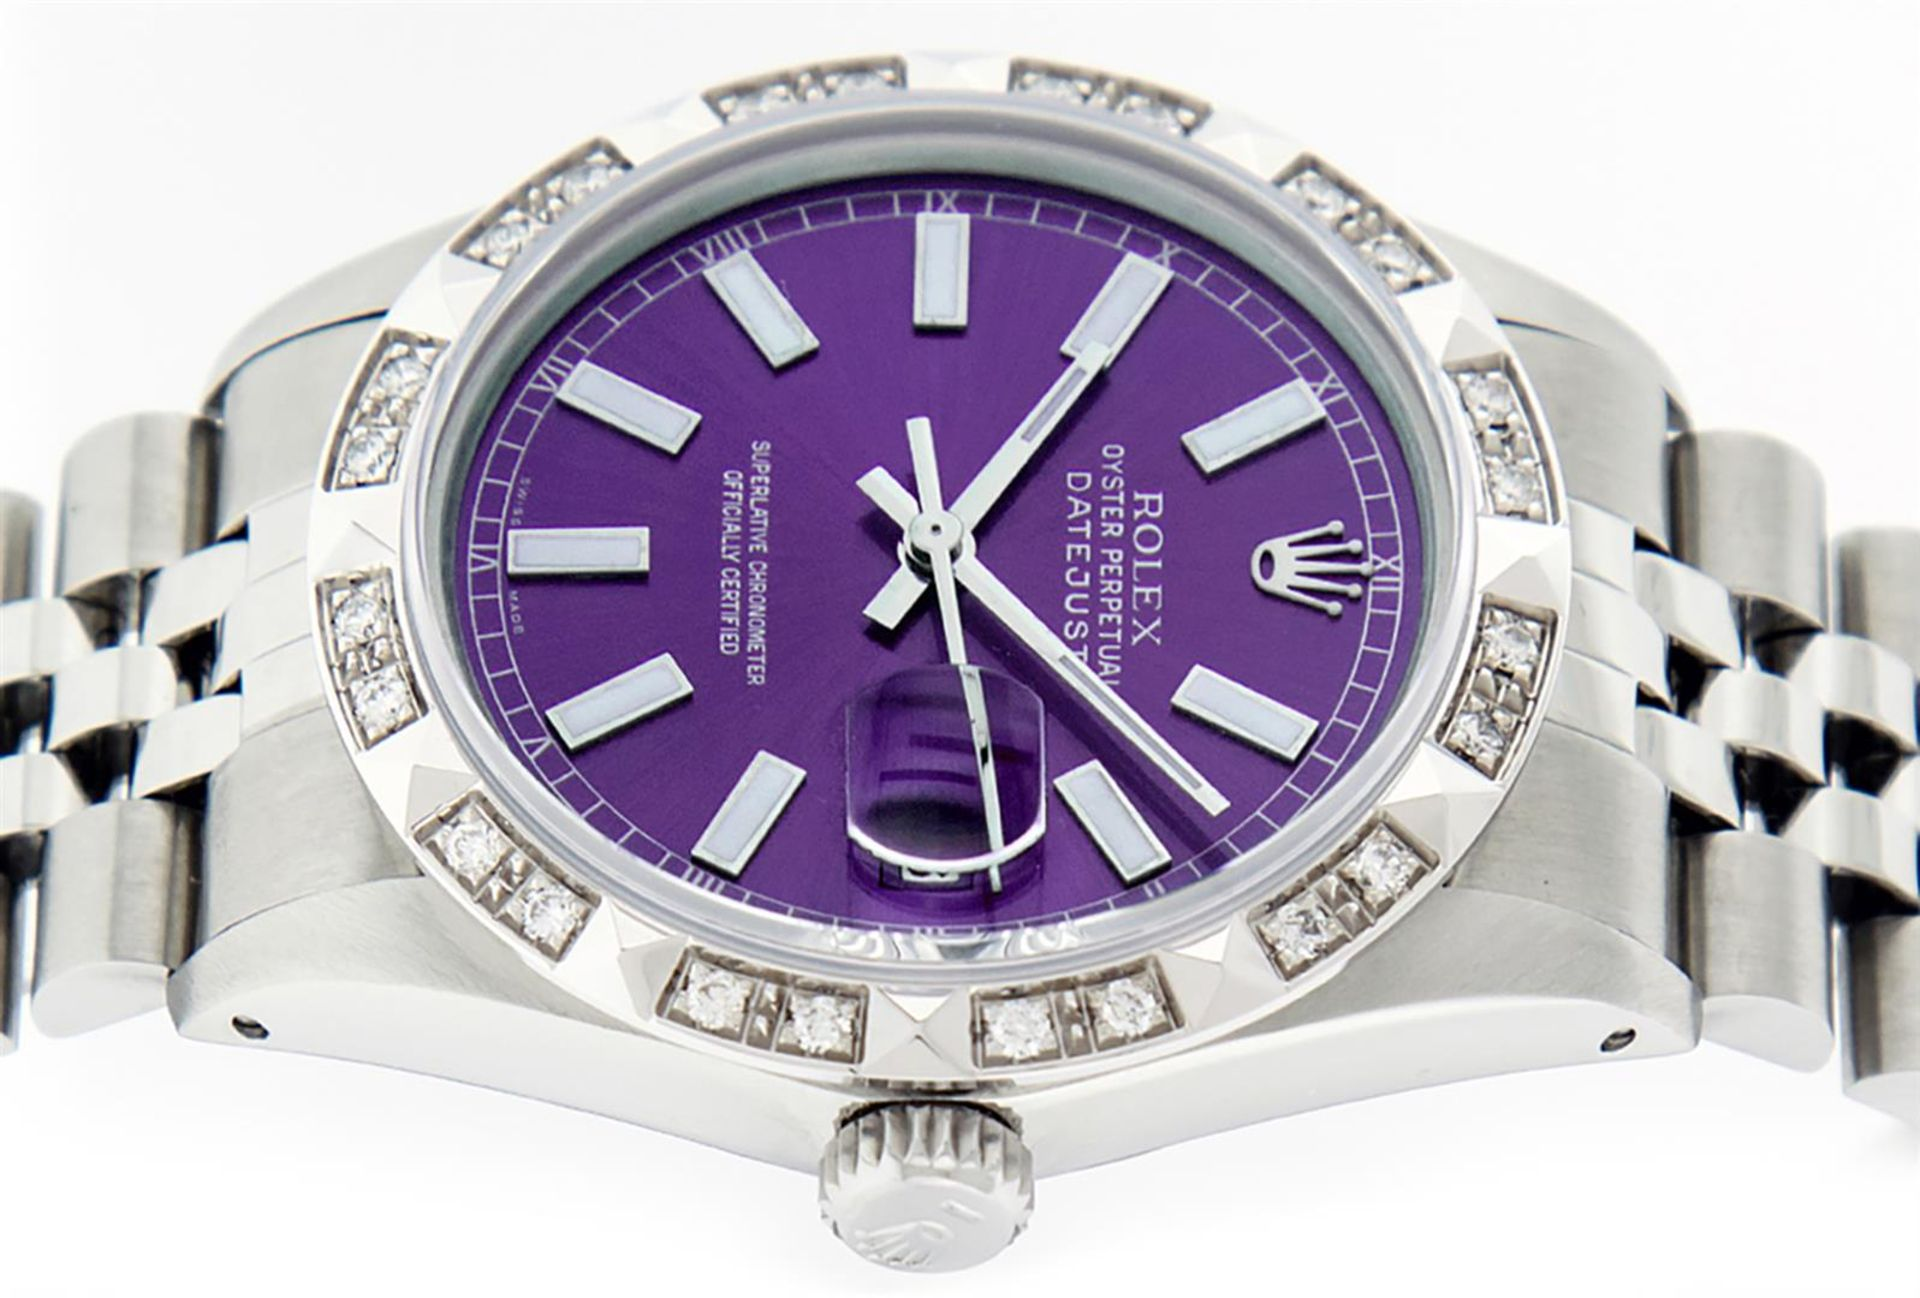 Rolex Mens Stainless Steel 36MM Purple Index Pyramid Diamond Datejust Wristwatch - Image 8 of 9